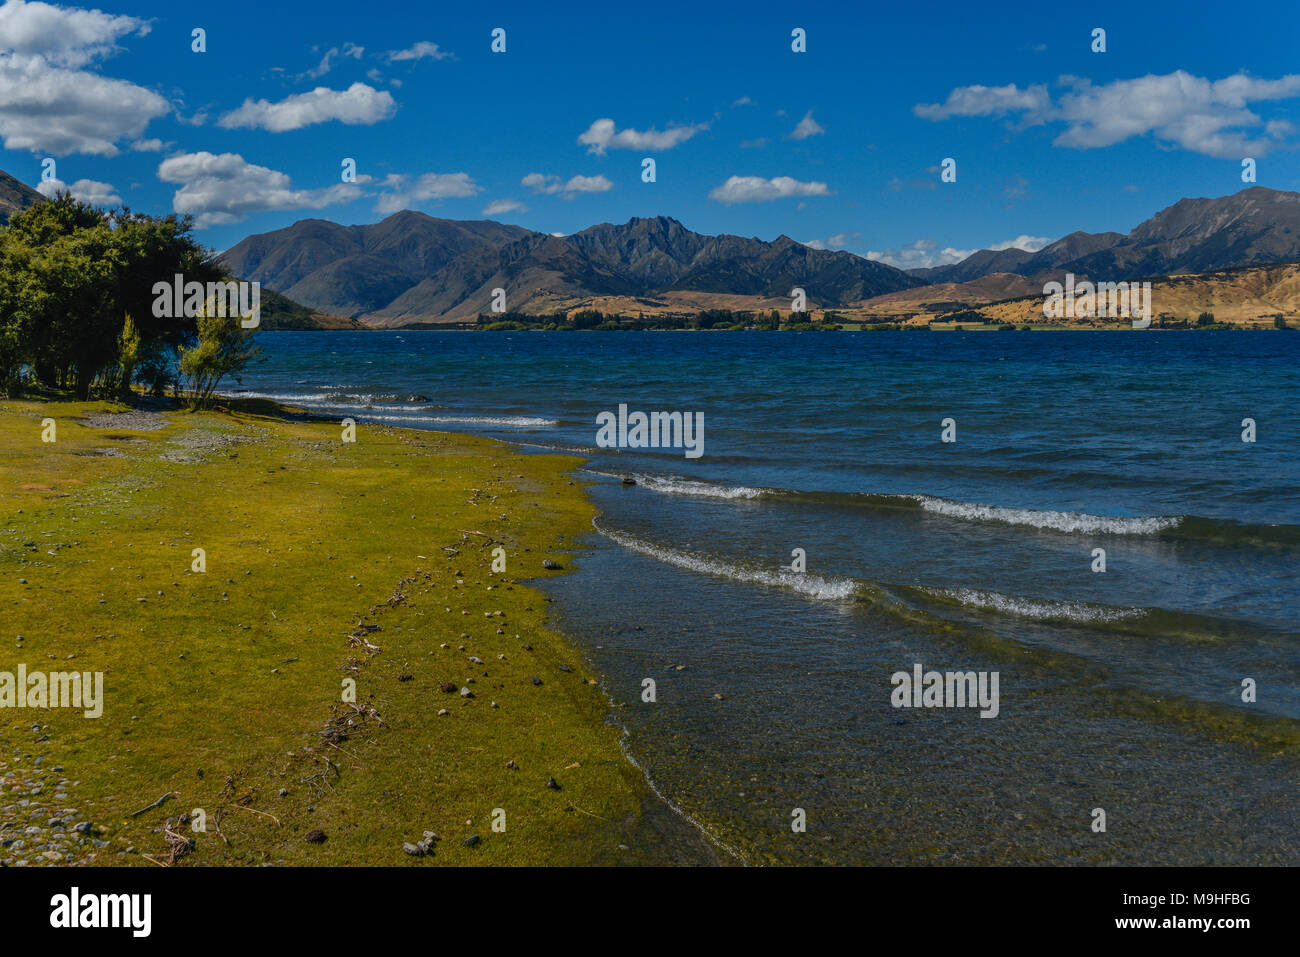 Lakeside view of Lake Wanaka in the South Island of New Zealand. Gentle waves lap the green shore line, with a range of hills in the background. - Stock Image